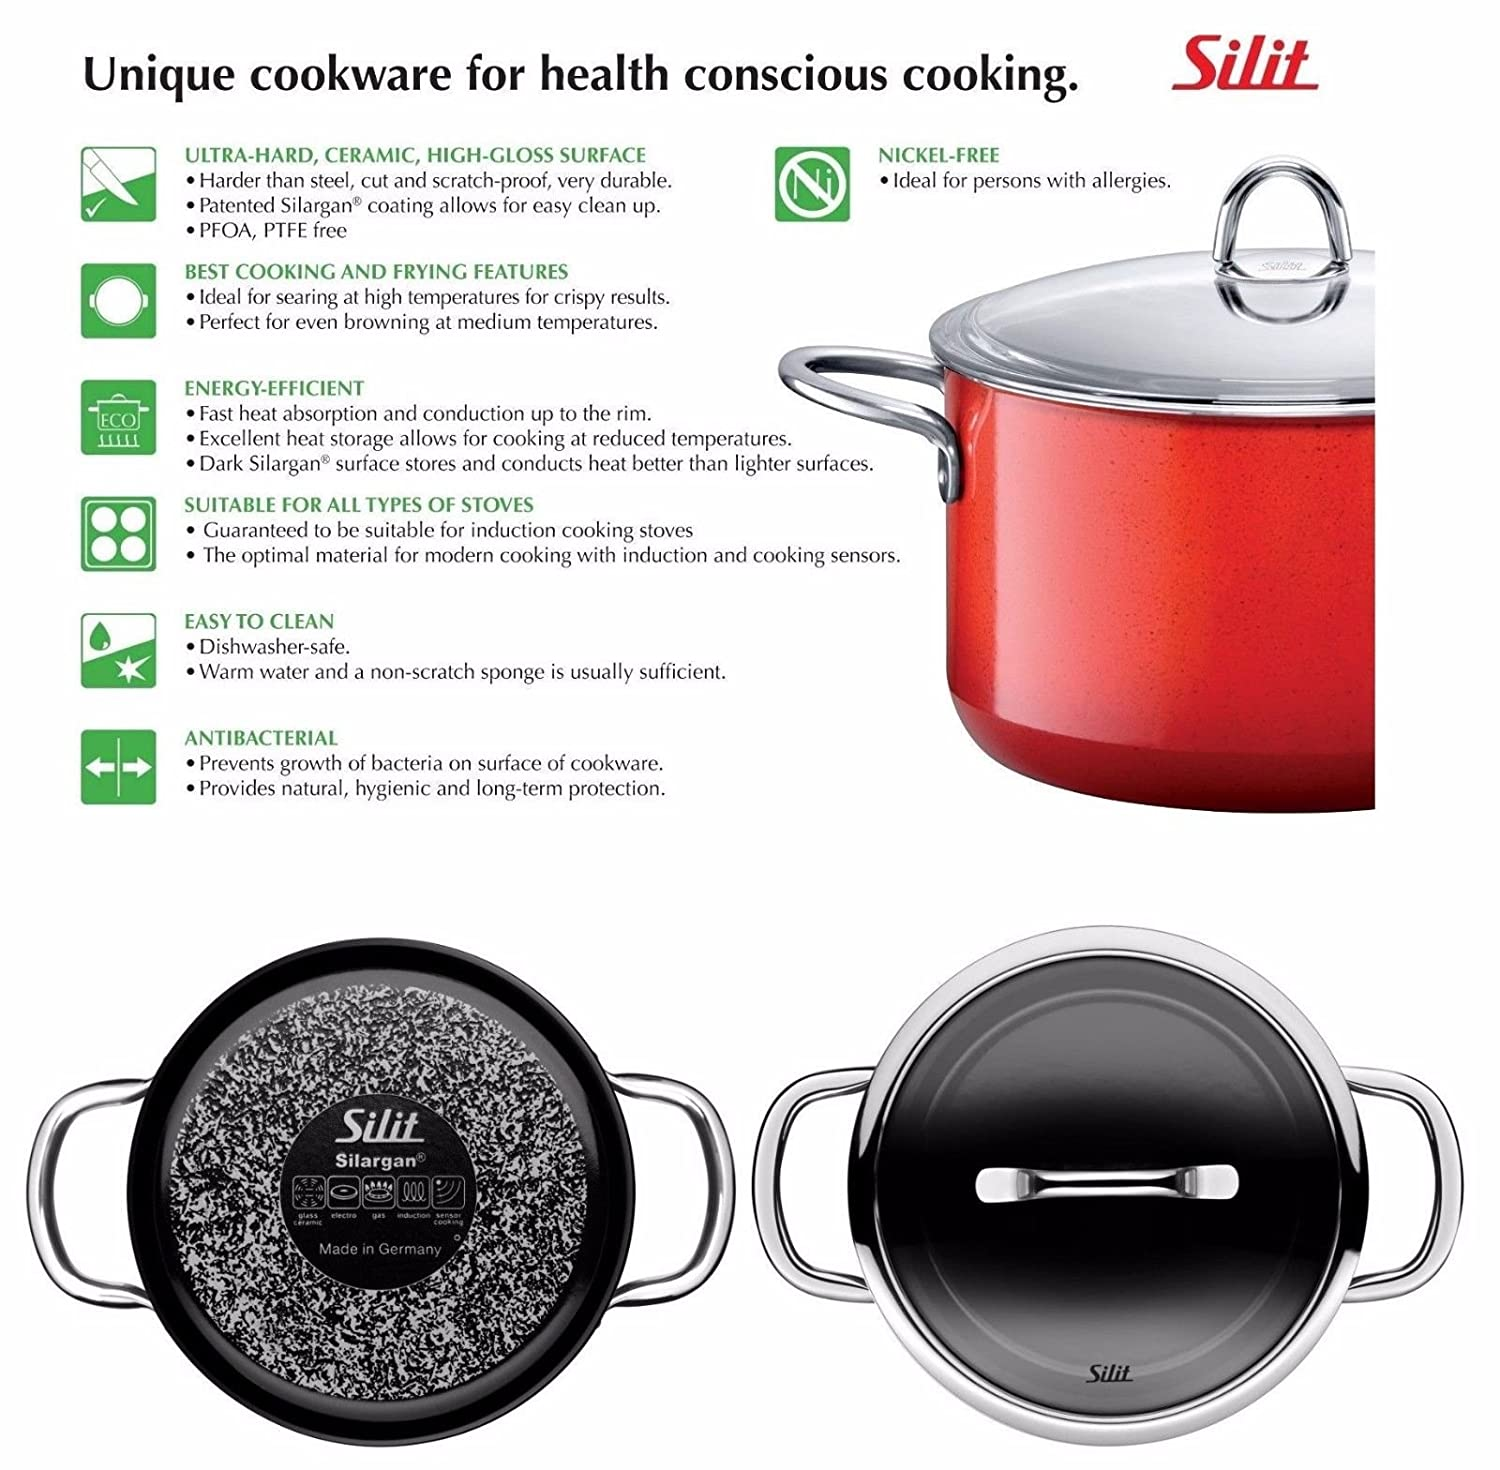 silit set gallery of silit sicomatic pressure cooker econtrol pcset with silit set interesting. Black Bedroom Furniture Sets. Home Design Ideas